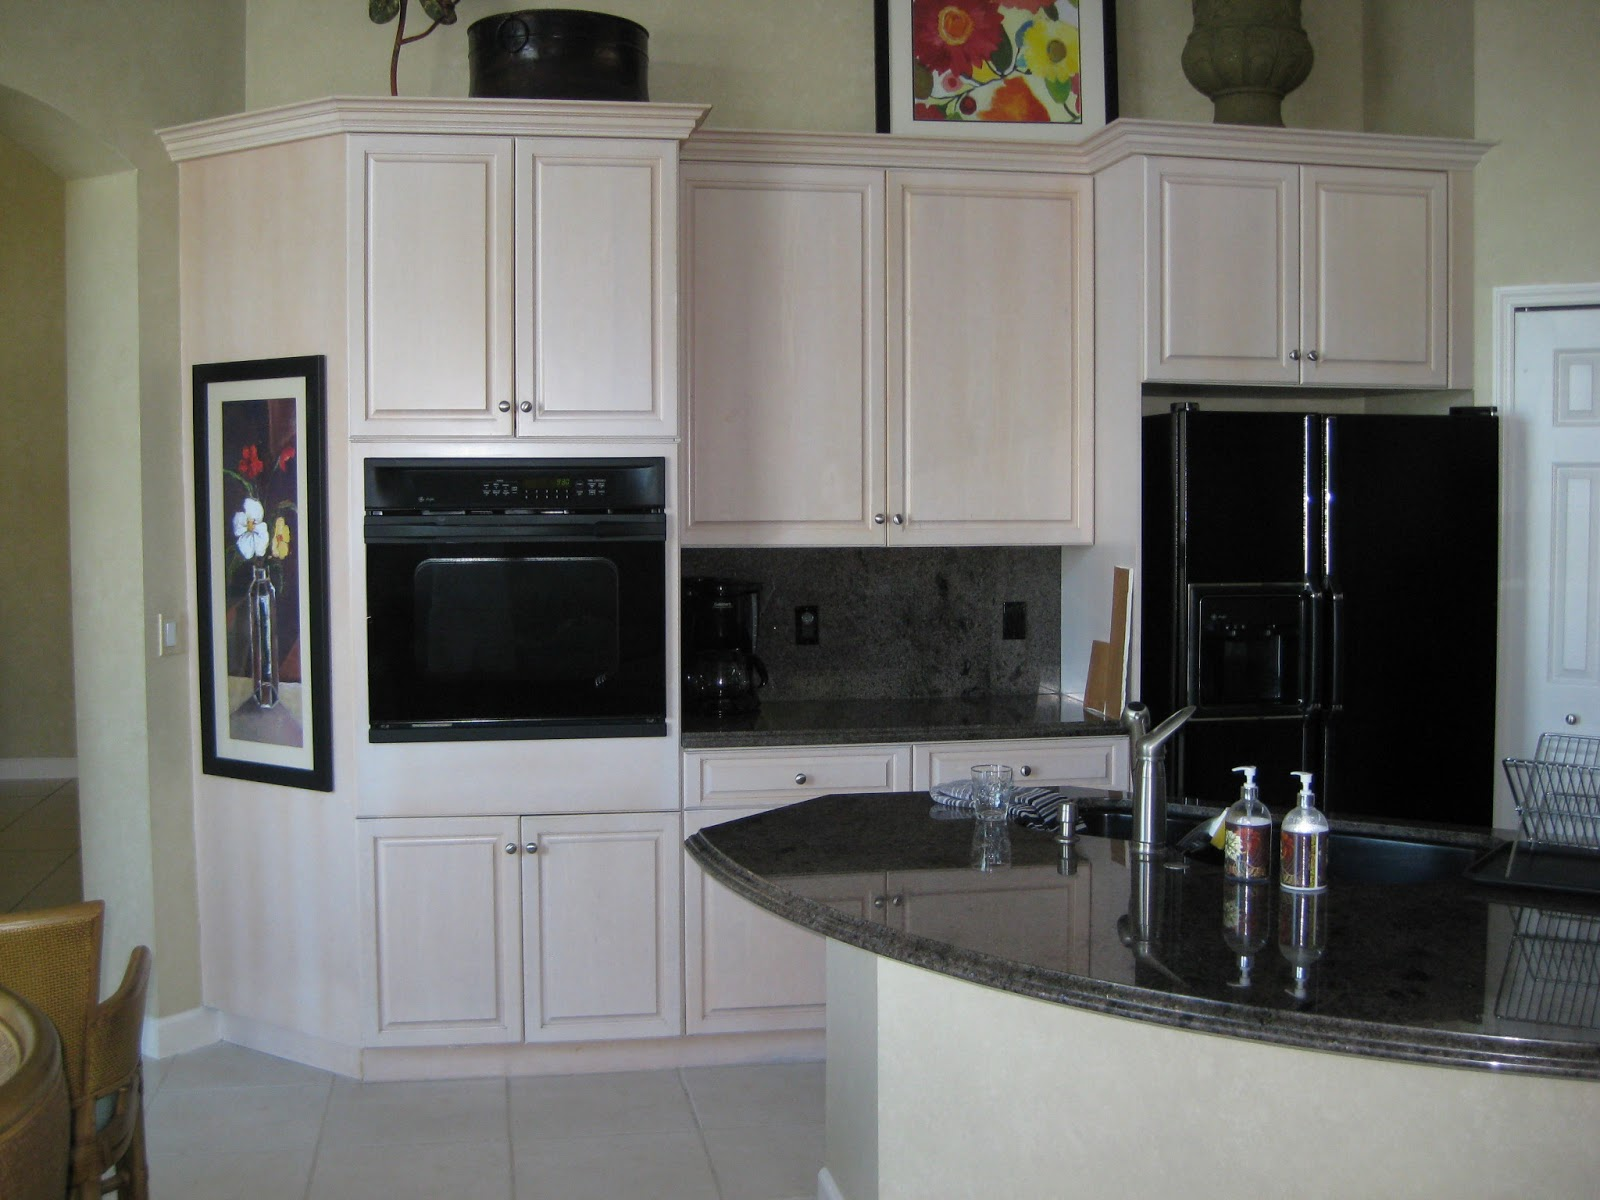 Array Of Color Inc Faux Wood Finish Kitchen Cabinets